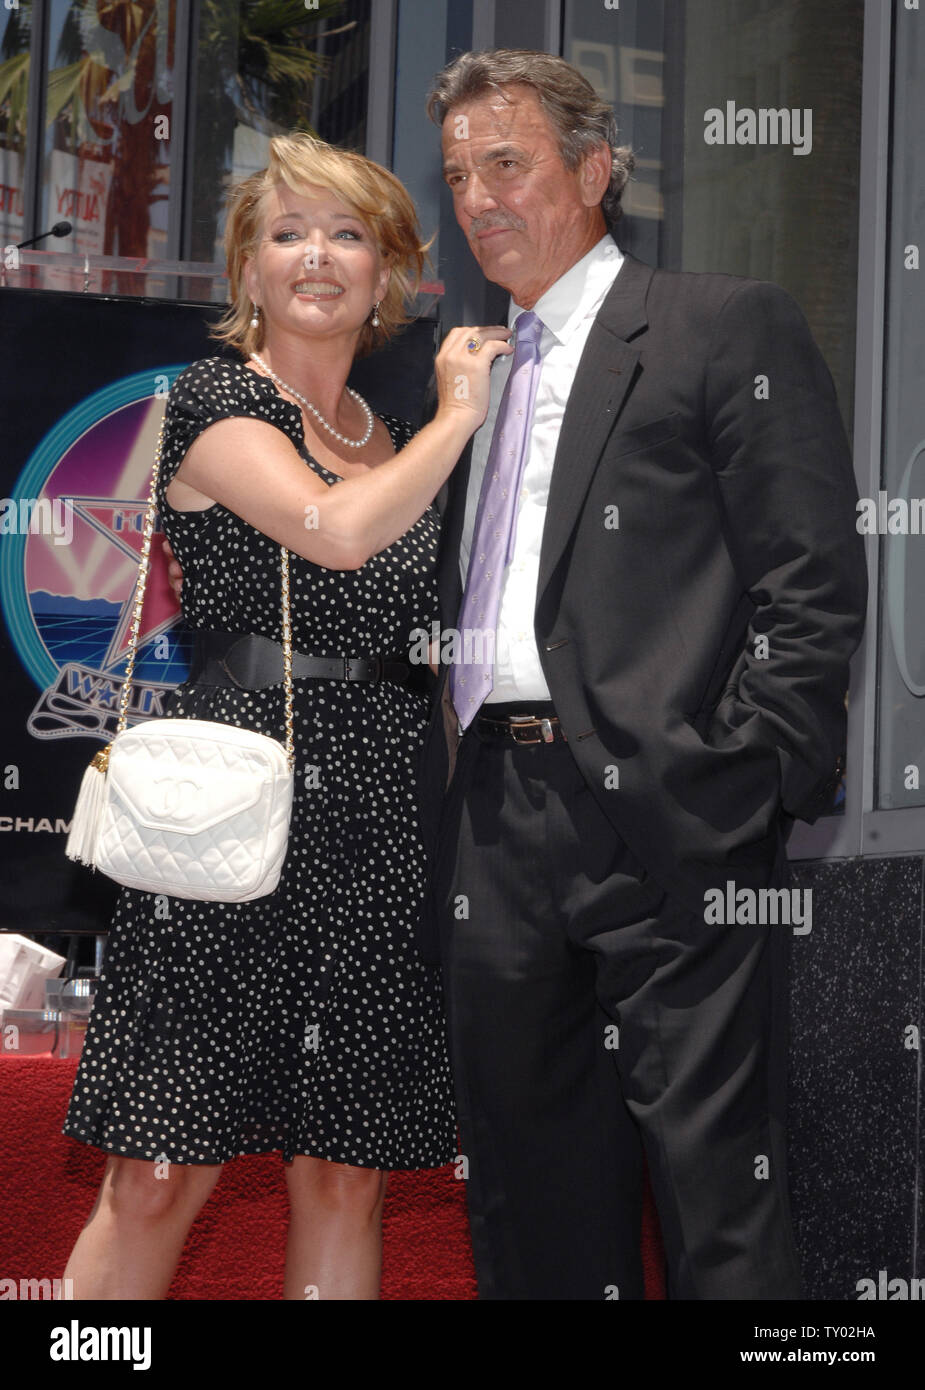 Page 3 Tycoon Film High Resolution Stock Photography And Images Alamy Also, read to find about his wife dale russell gudegast and their married life. alamy